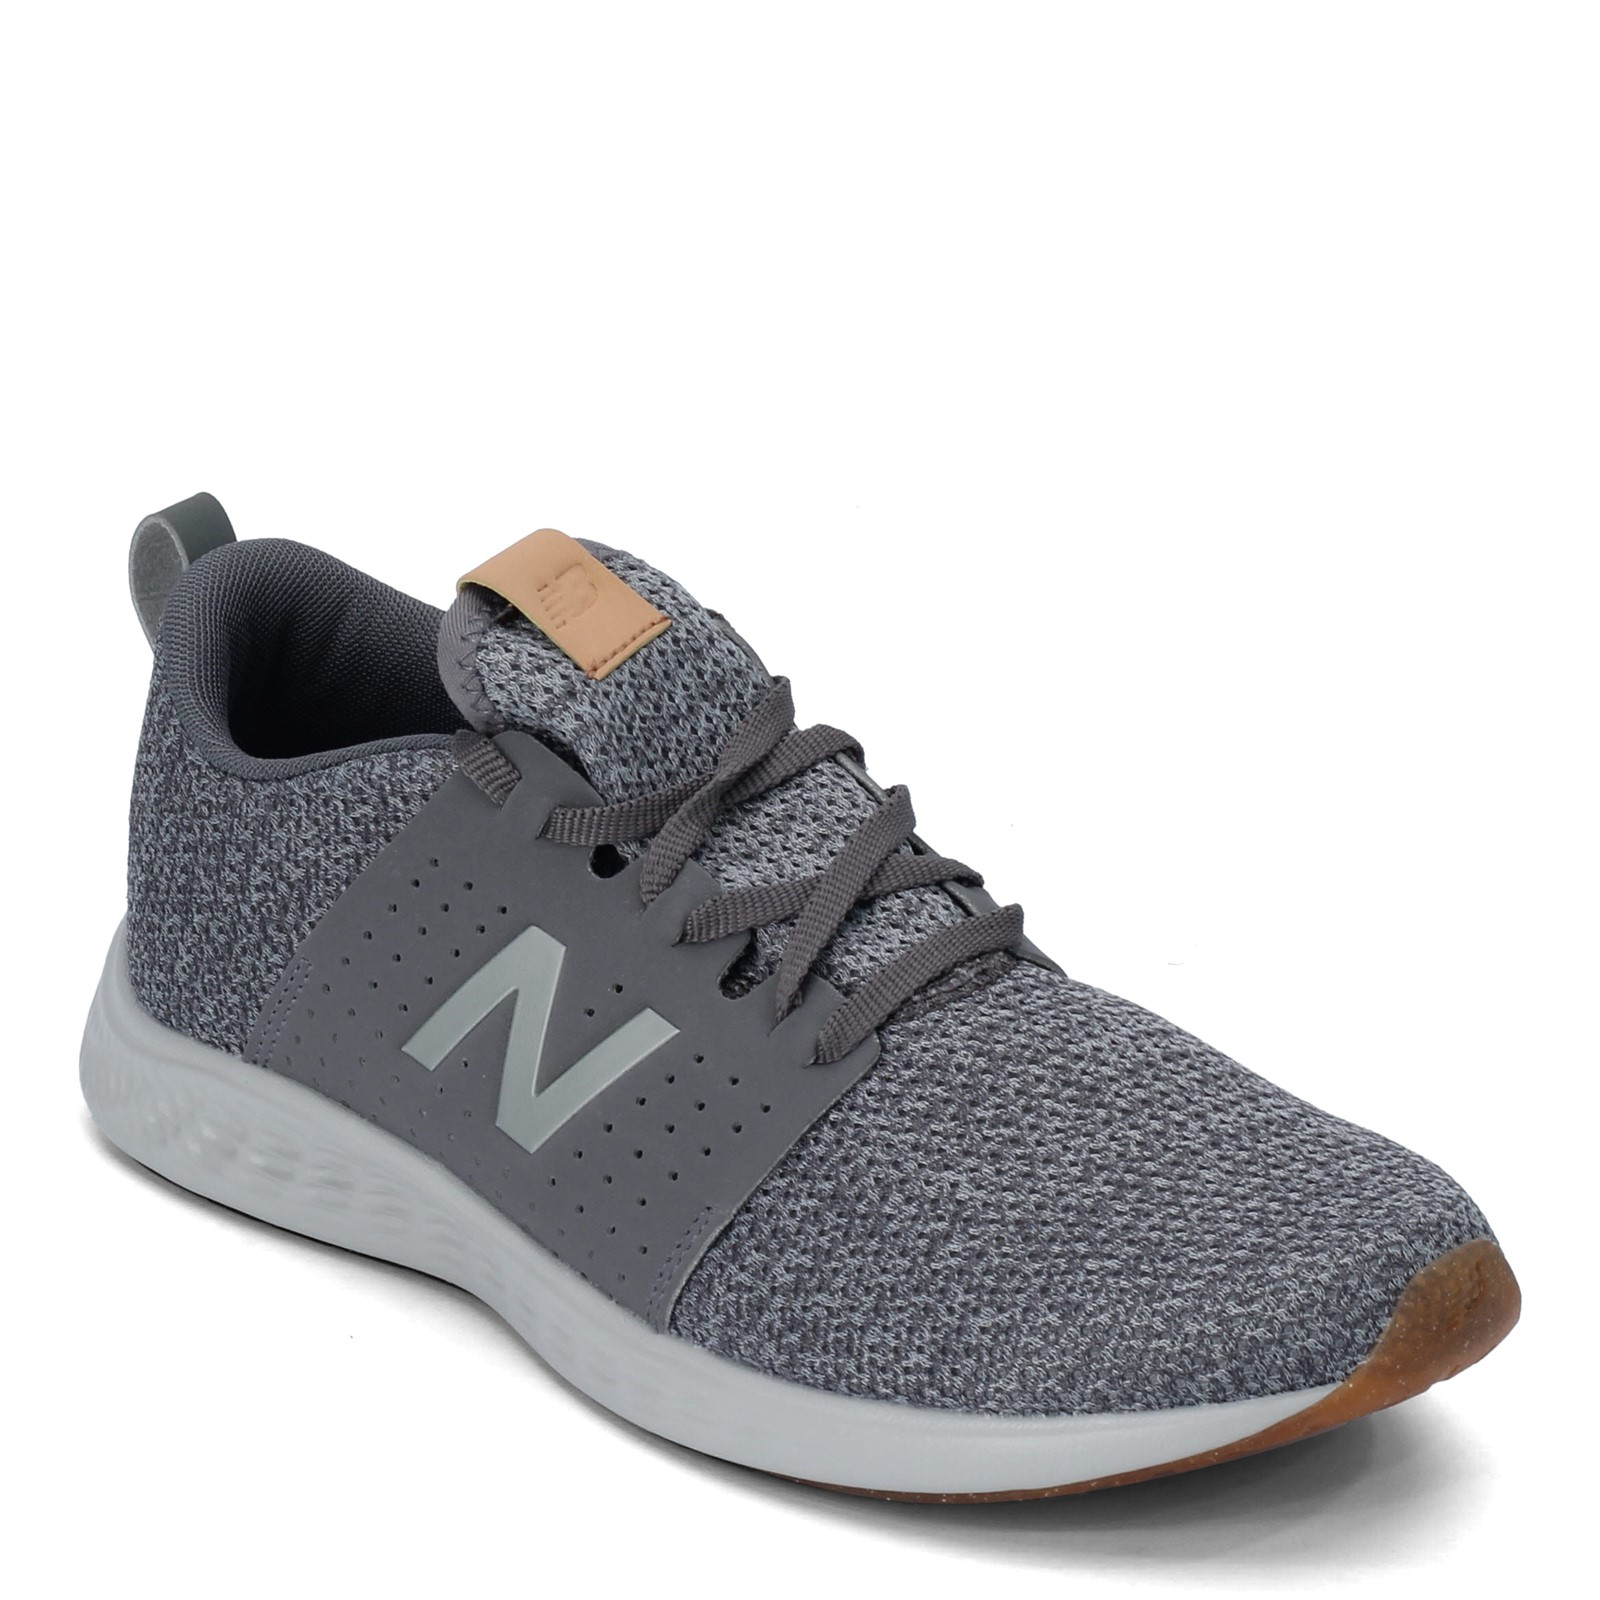 Boy's New Balance, Fresh Foam Sport sneakers